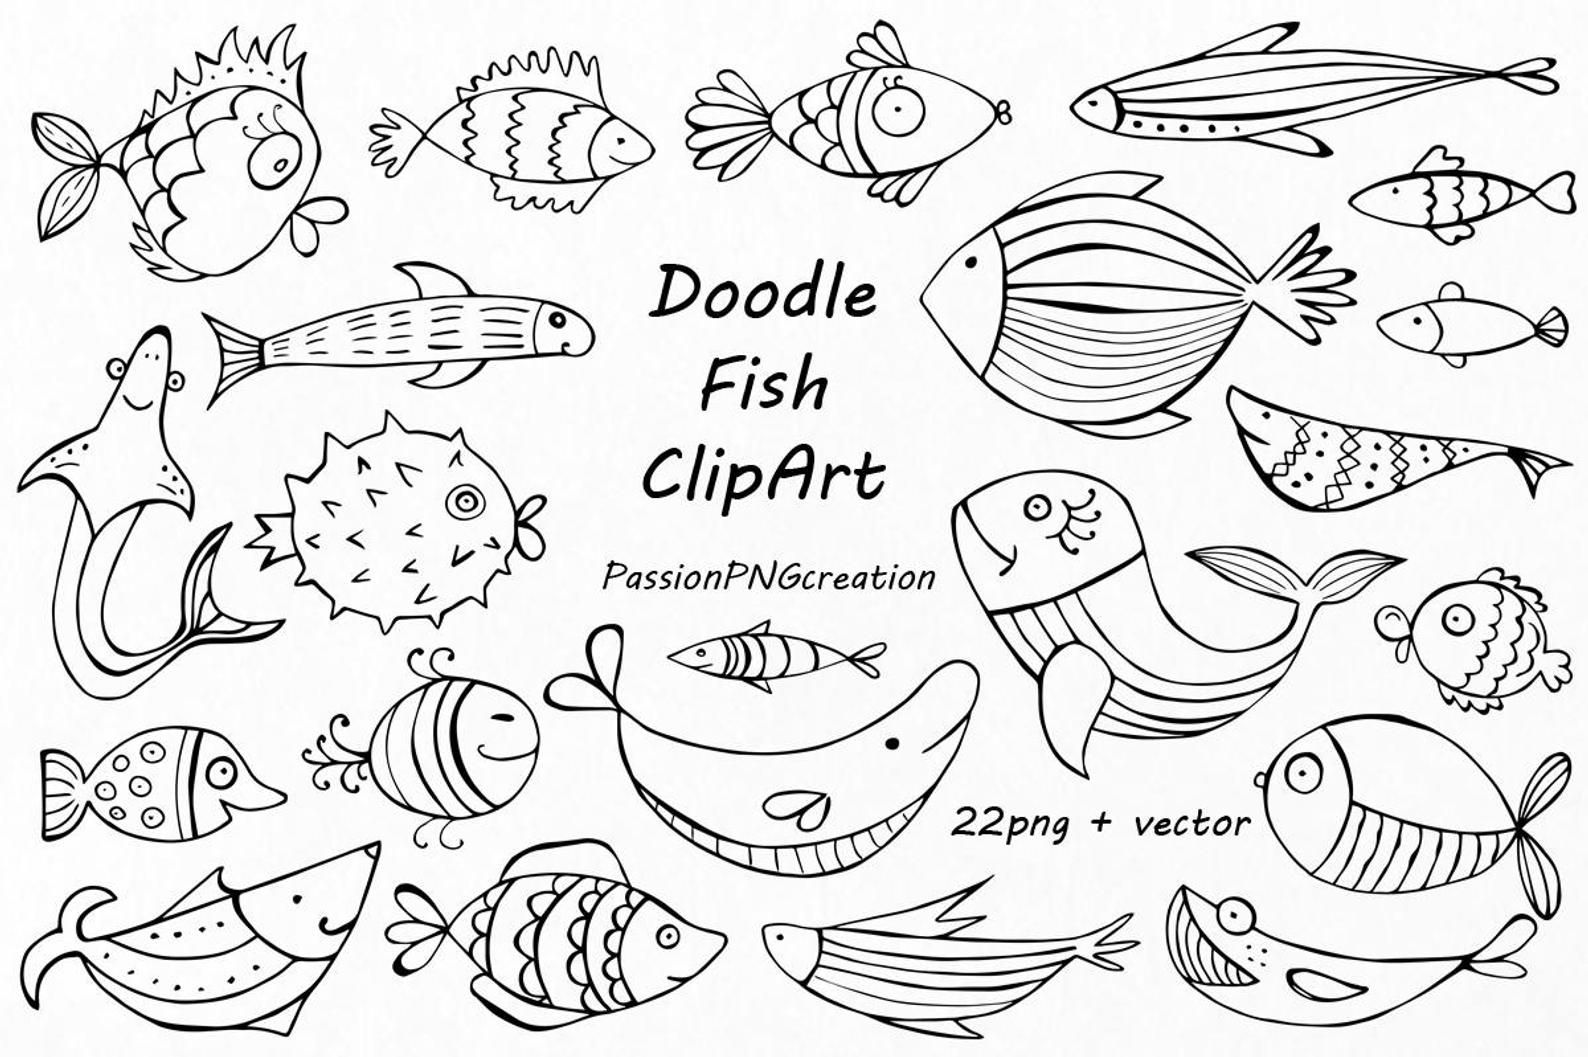 Zentangle fish clipart vector black and white library Pin by Sally Navis on Zentangle/Doodles in 2019 | Fish ... vector black and white library